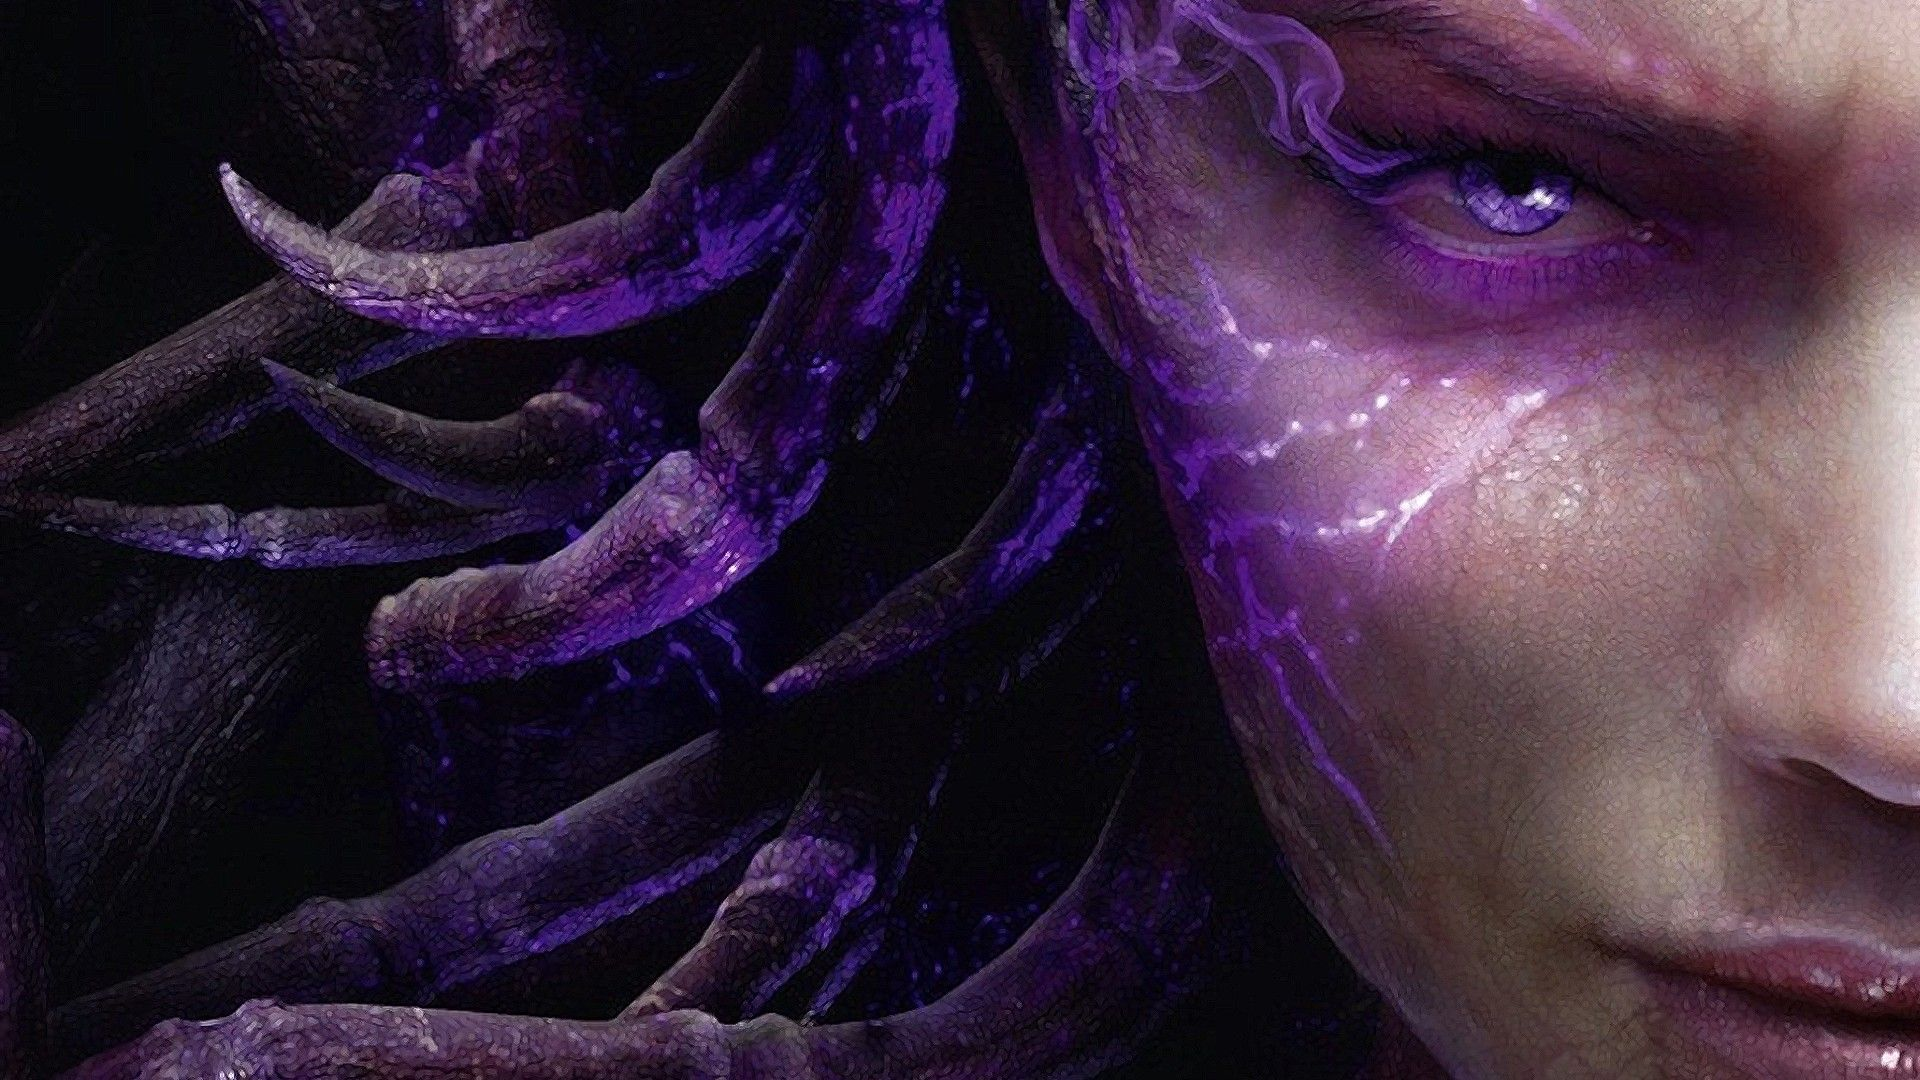 Starcraft 2 Heart Of The Swarm Wallpaper Google Search